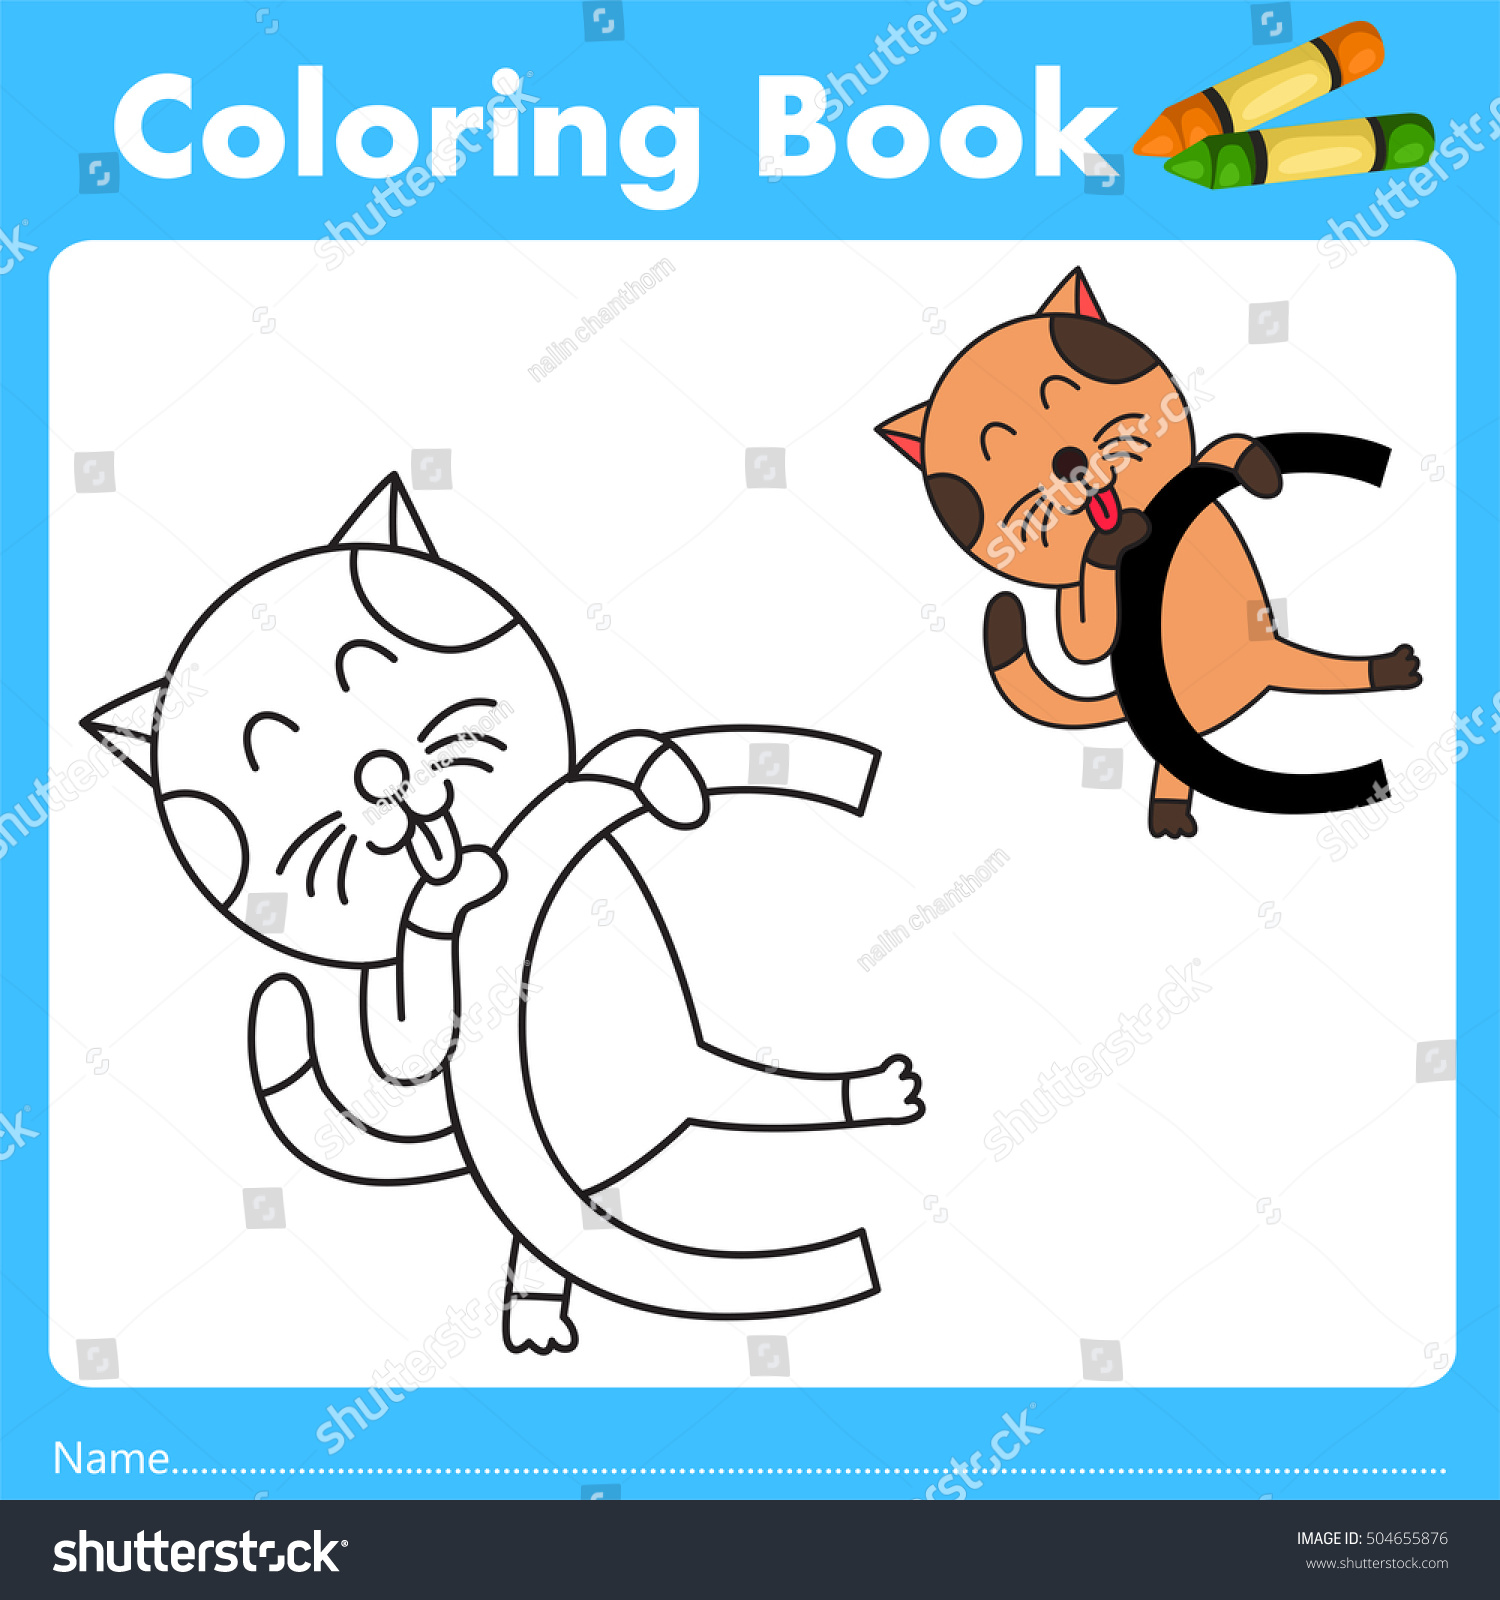 Book color illustrator - Illustrator Of Color Book With Cat Animal